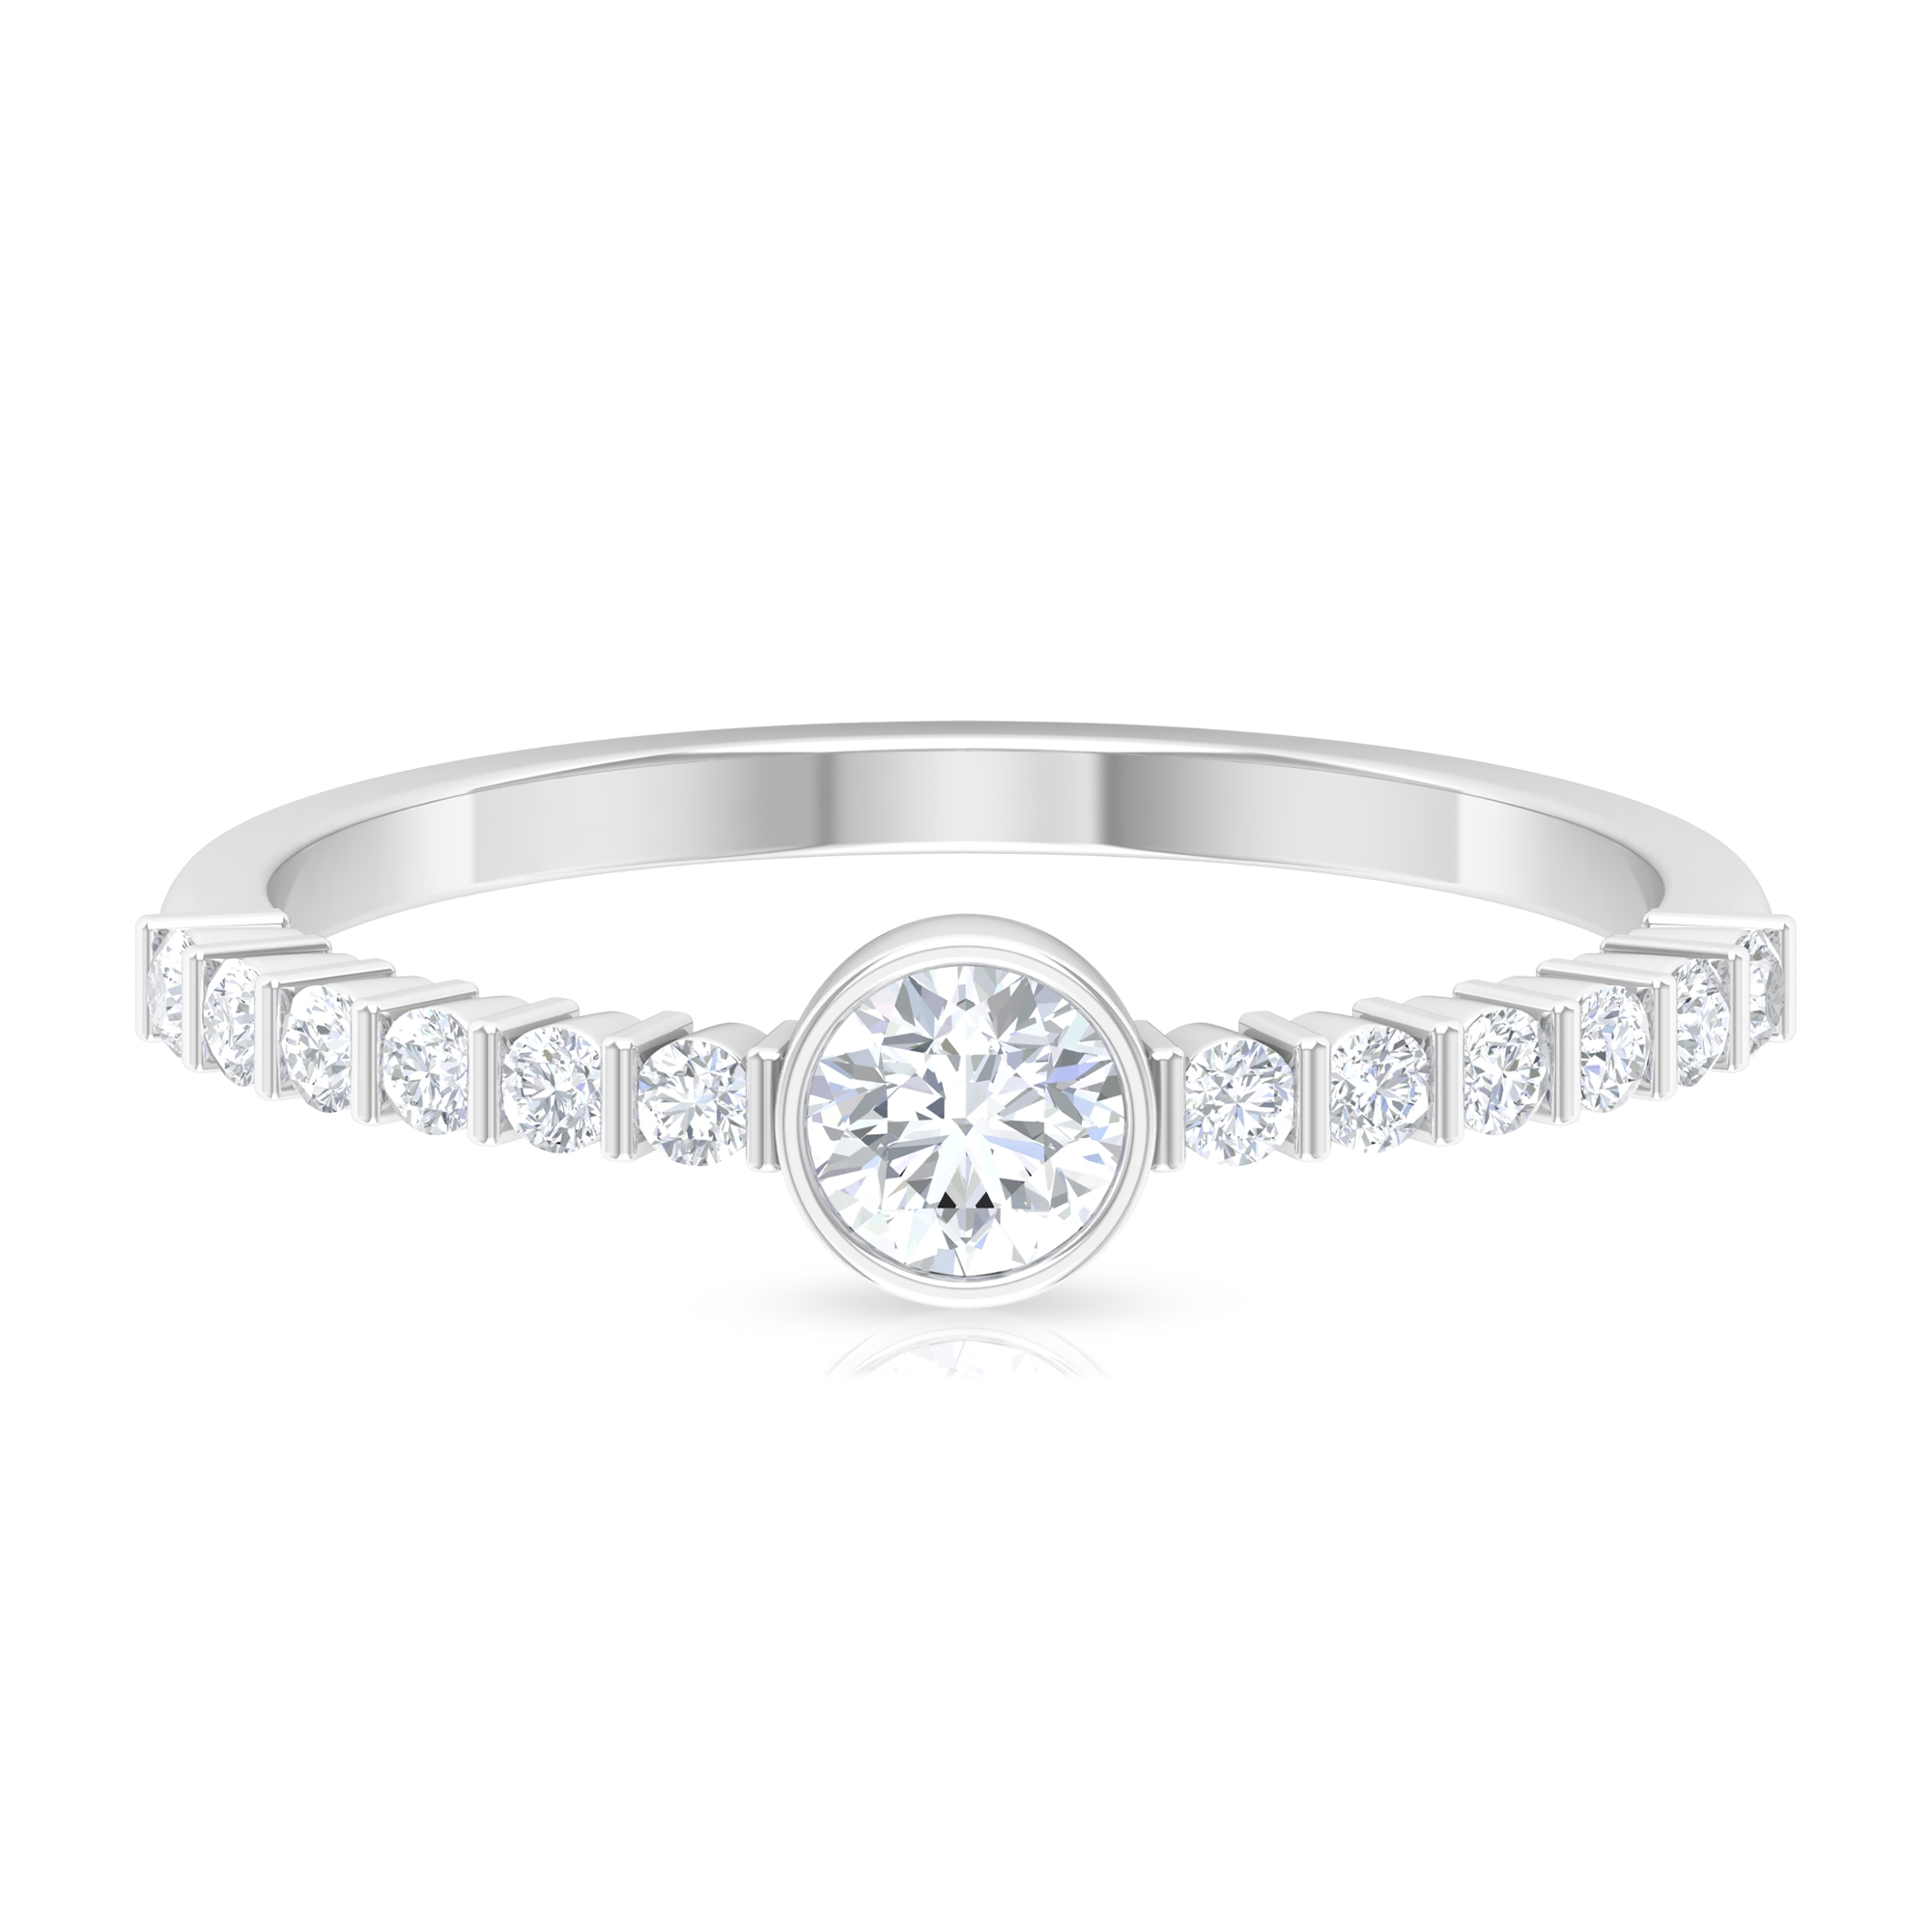 1/2 CT Bezel Set Solitaire Diamond Ring with Bar Set Side Stones